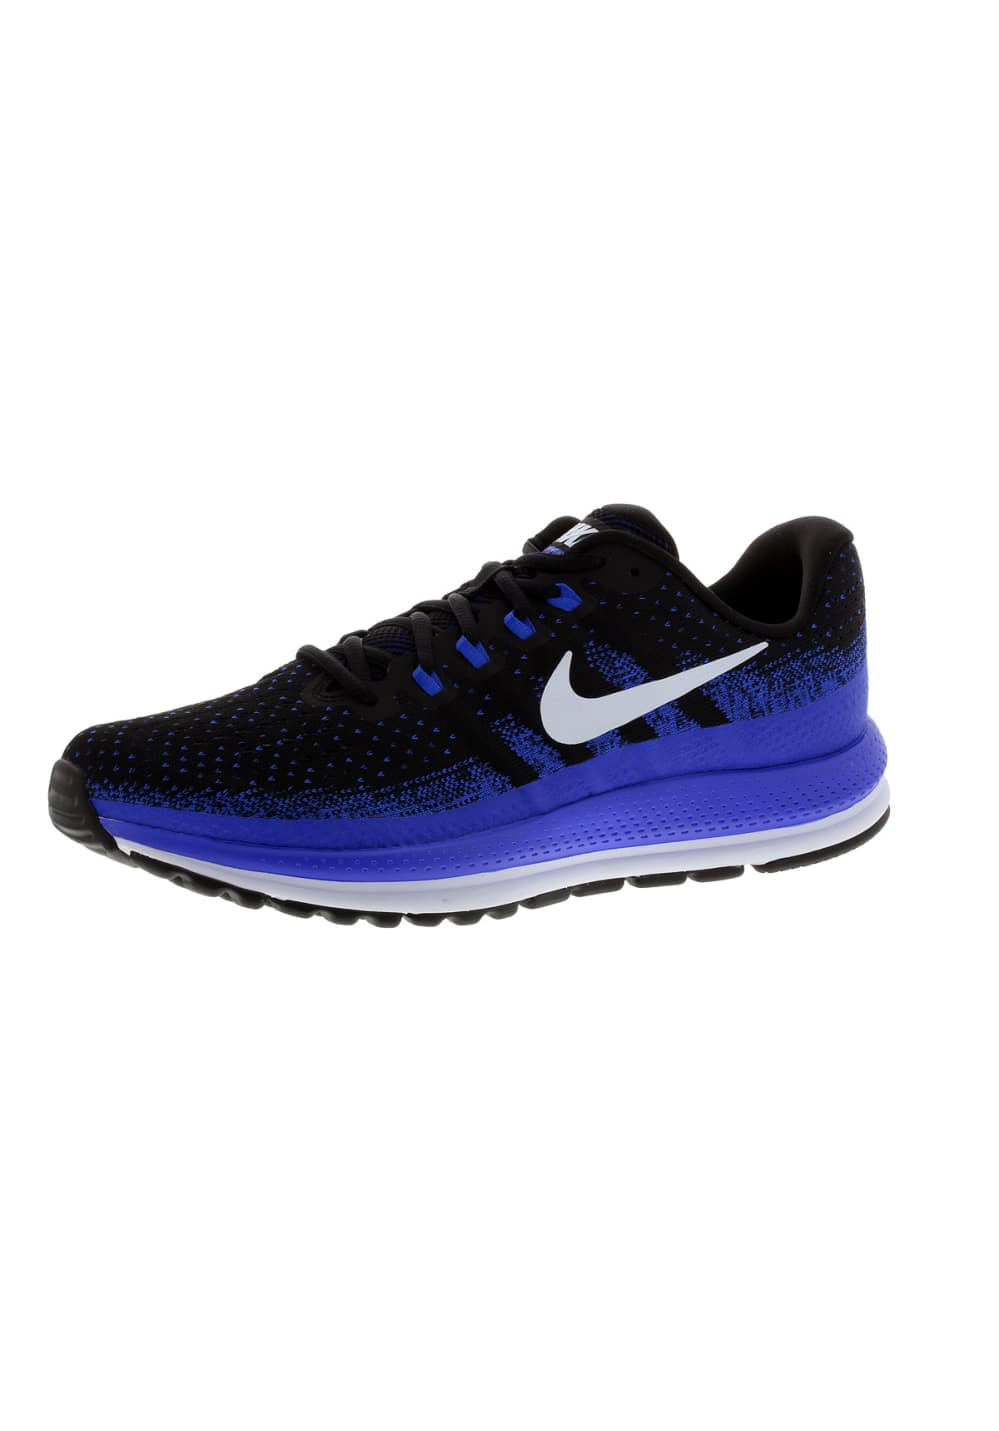 best service 54922 dccb6 Next. Nike. Air Zoom Vomero 13 - Chaussures running pour Homme